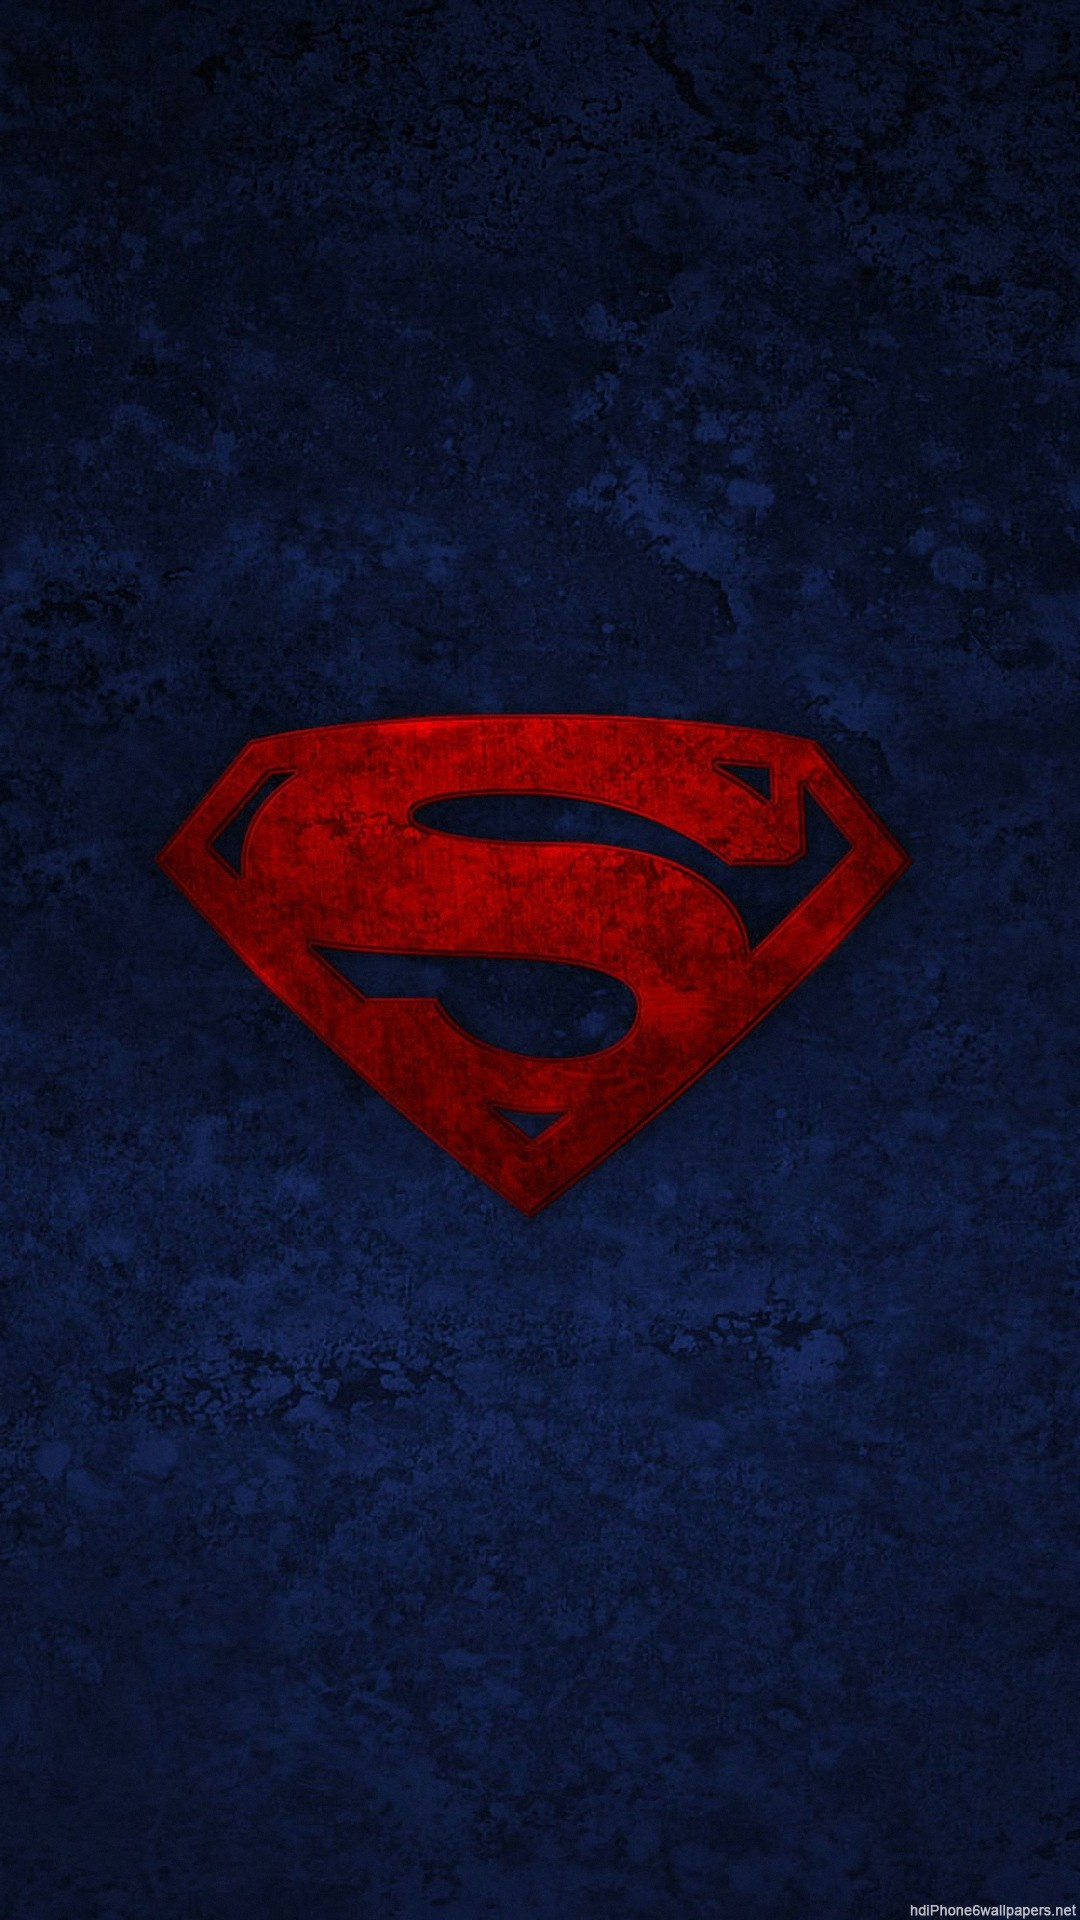 Superman logo wallpaper 63 images 1920x1080 superman logo man of steel wallpaper free desktop download voltagebd Gallery